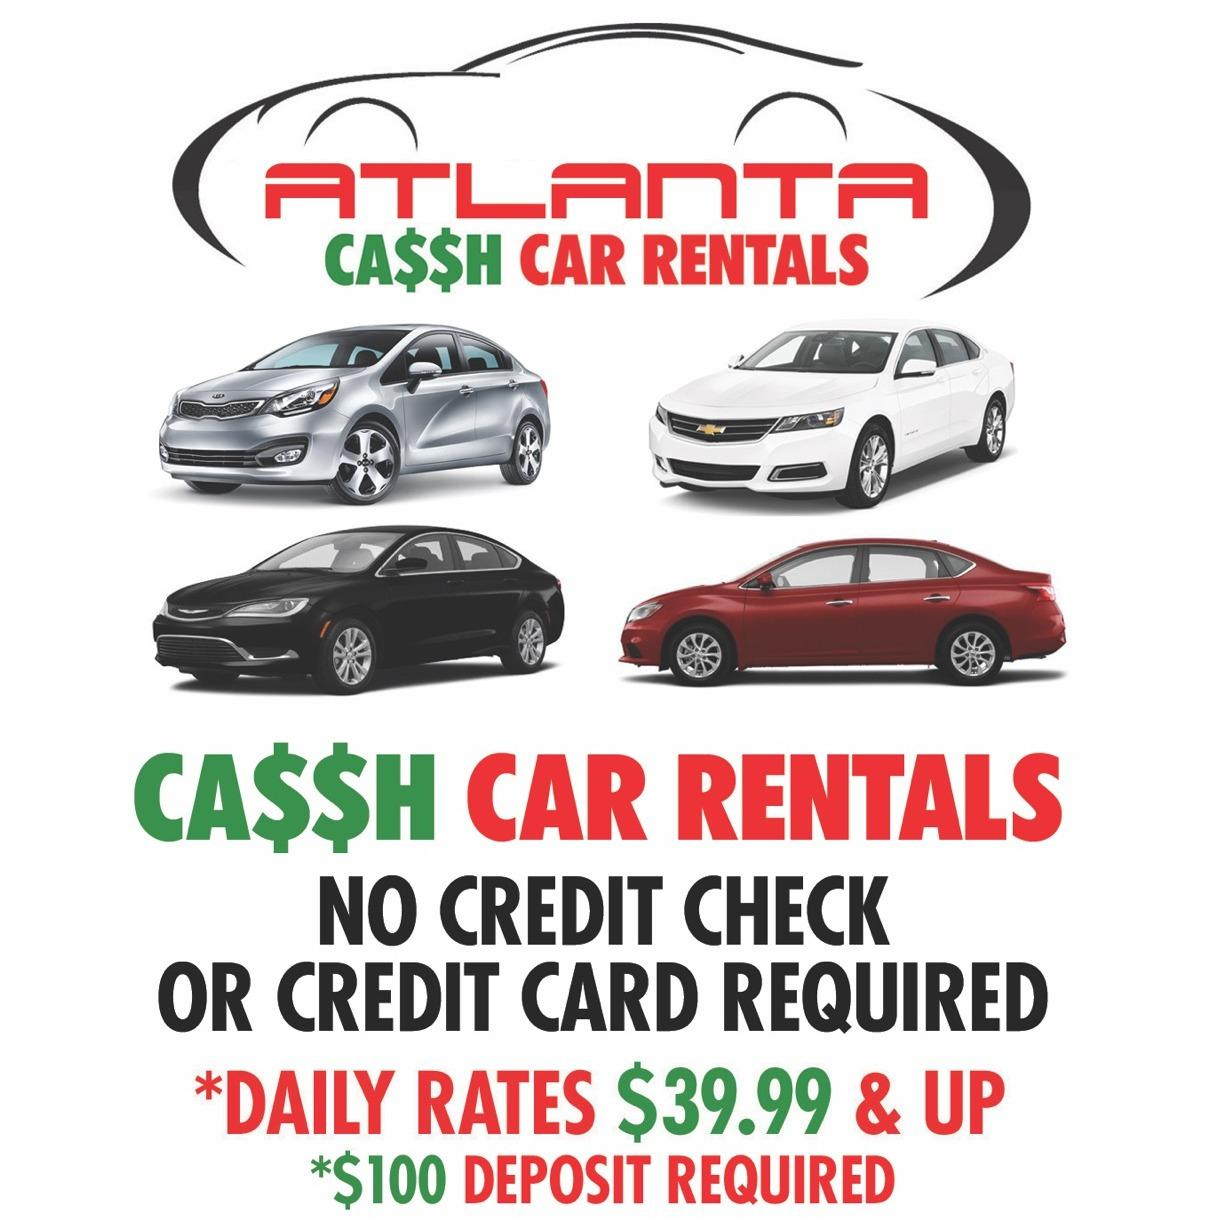 ATLANTA (CASH) CAR RENTALS, INC.